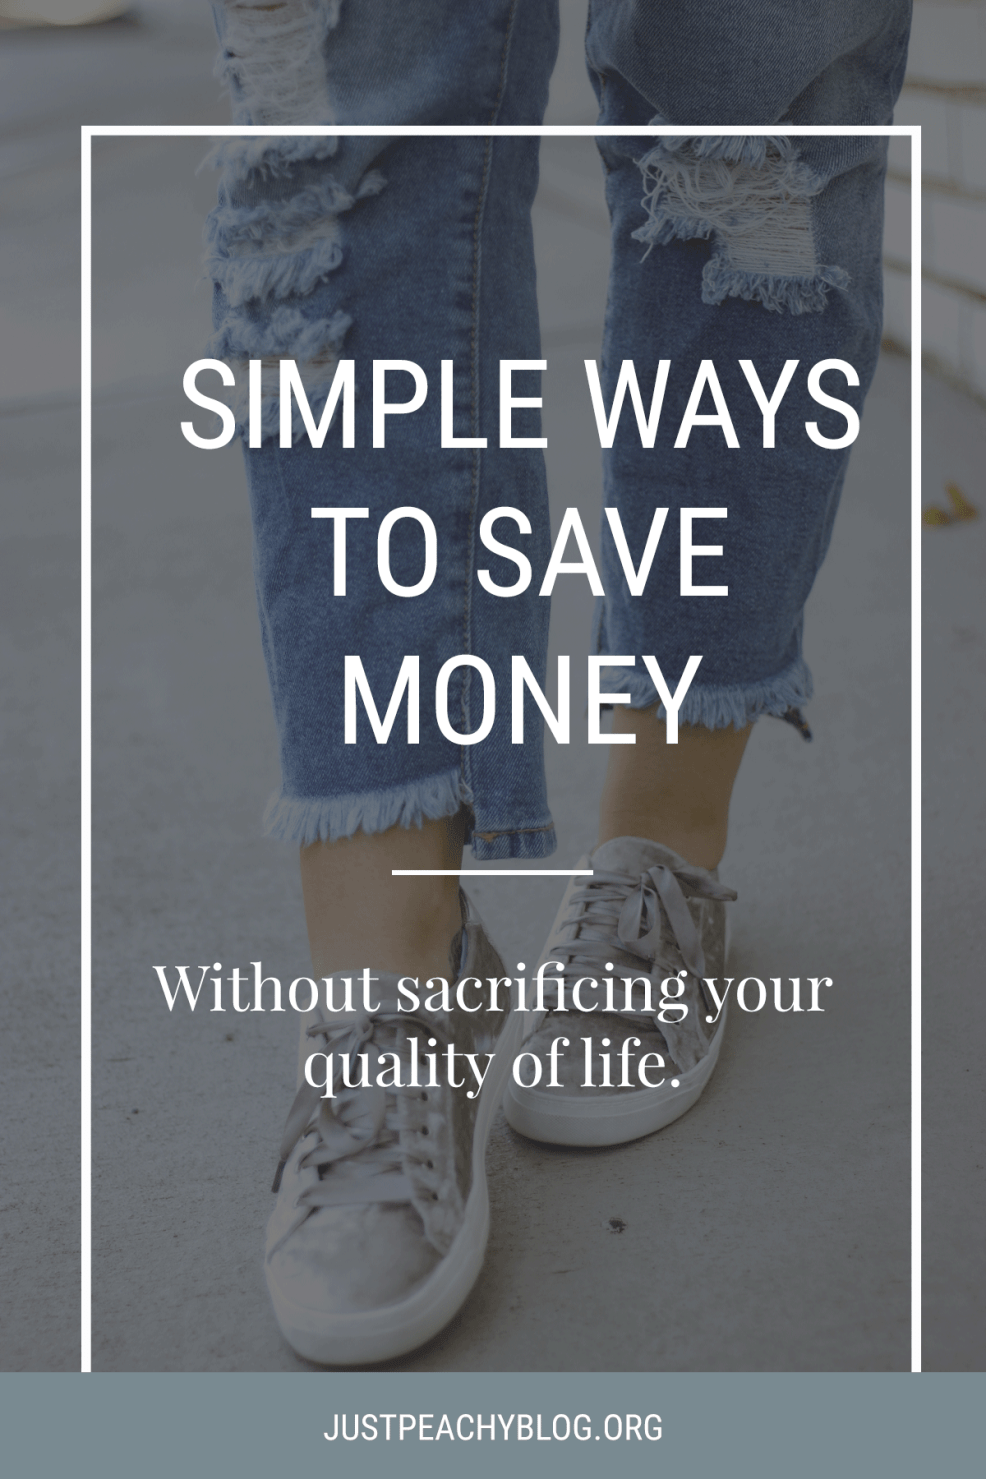 Simple Ways to Save Money Without Sacrificing Your Quality of Life | Just Peachy Blog